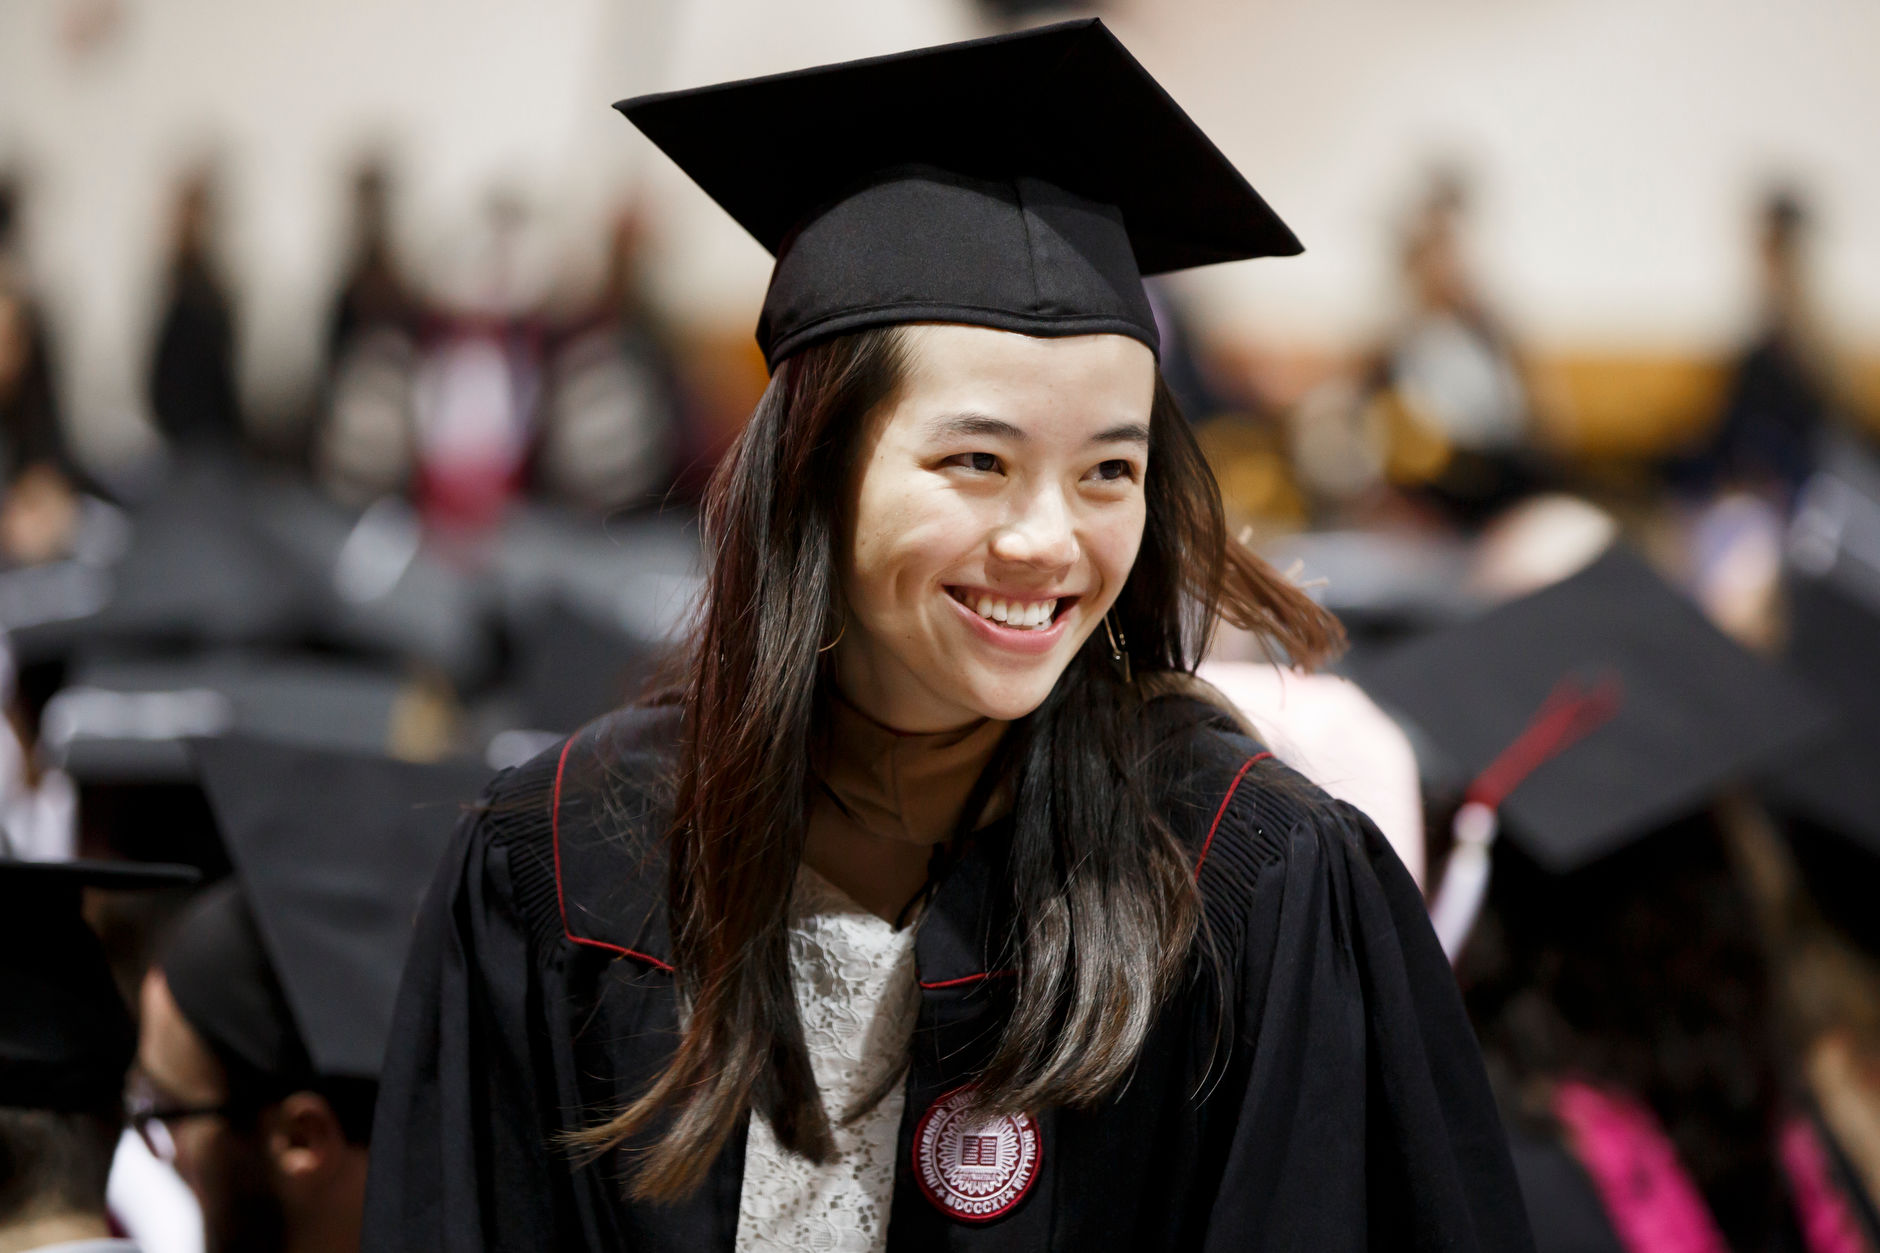 A graduate shares a smile during the Indiana University Bloomington Graduate Commencement at Assembly Hall on Friday, May 3, 2019. (James Brosher/Indiana University)